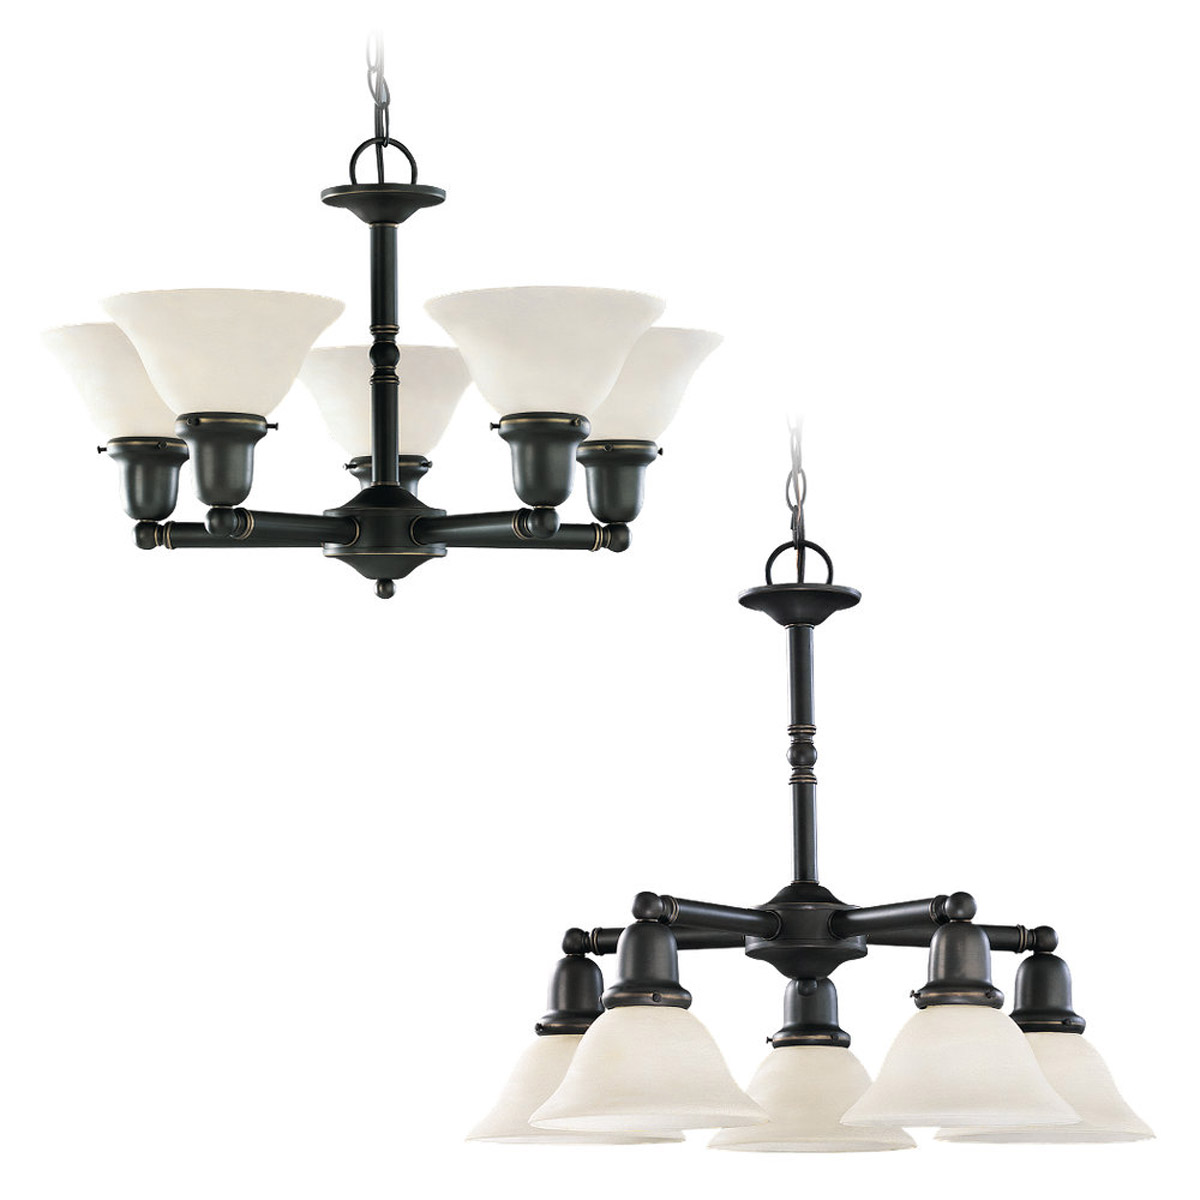 Sea Gull Lighting Sussex 5 Light Chandelier in Heirloom Bronze 31061-782